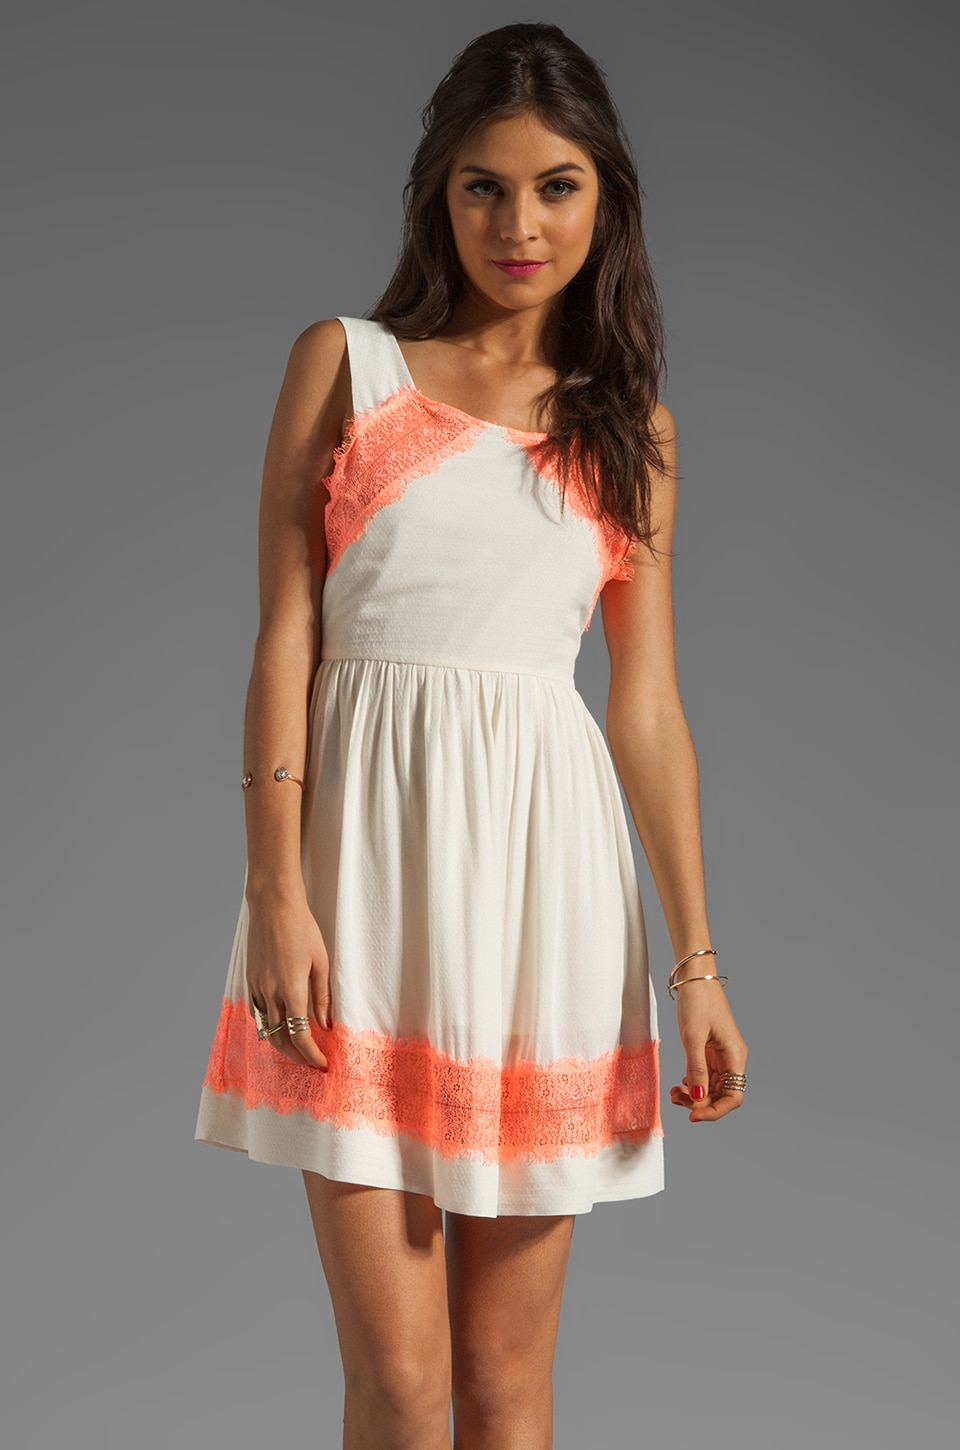 Free People Georgia Dress in Alabaster